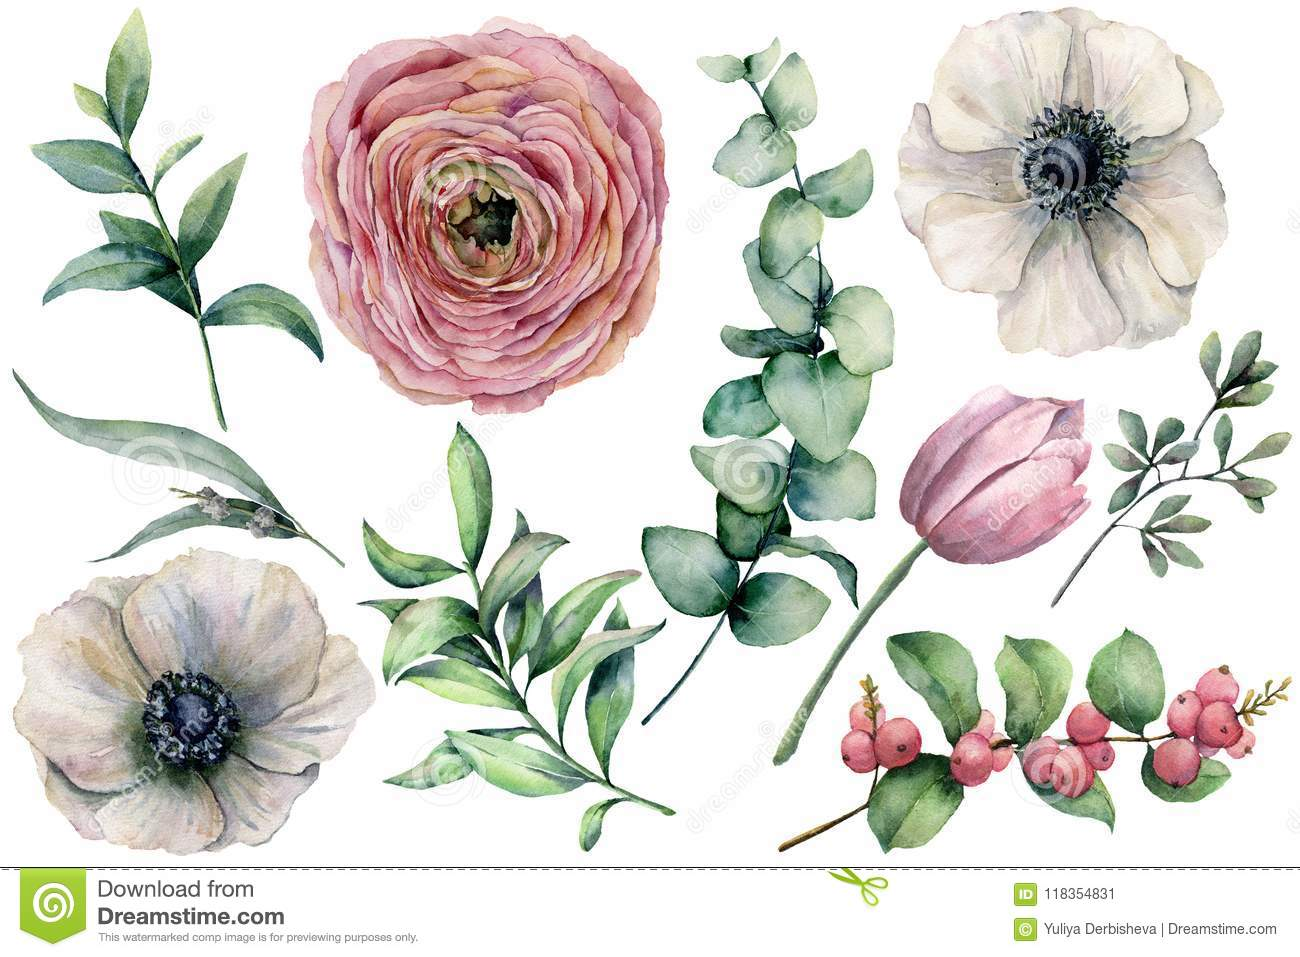 Watercolor flower set with eucalyptus leaves. Hand painted anemone, ranunculus, tulip, berries and branch isolated on